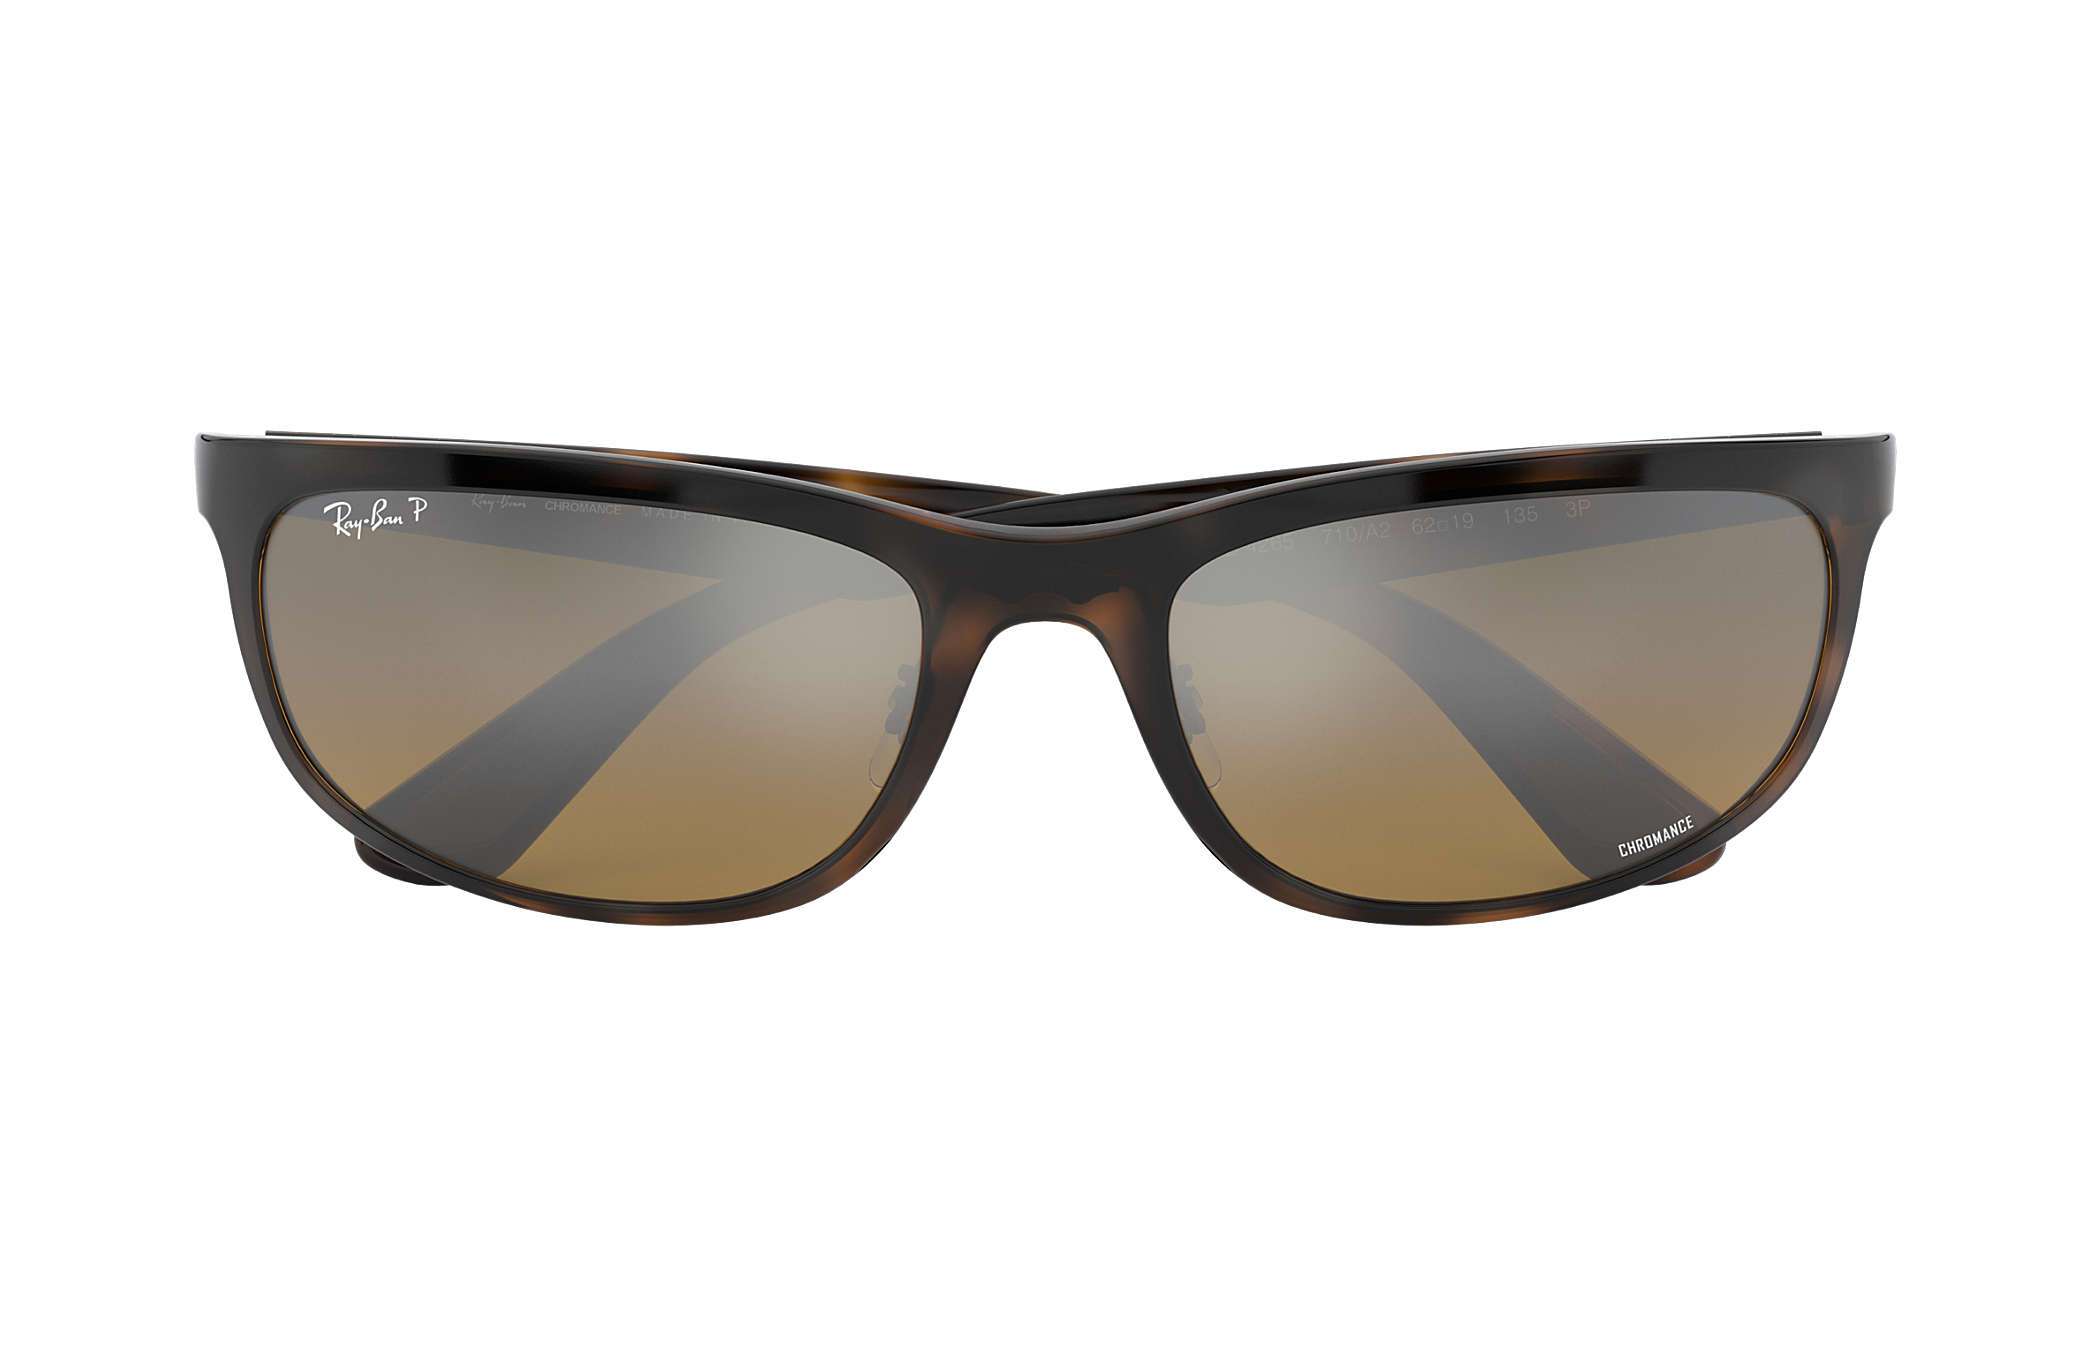 b09cc4ea3c Ray-Ban Rb4265 Chromance RB4265 Tortoise - Nylon - Brown Polarized ...